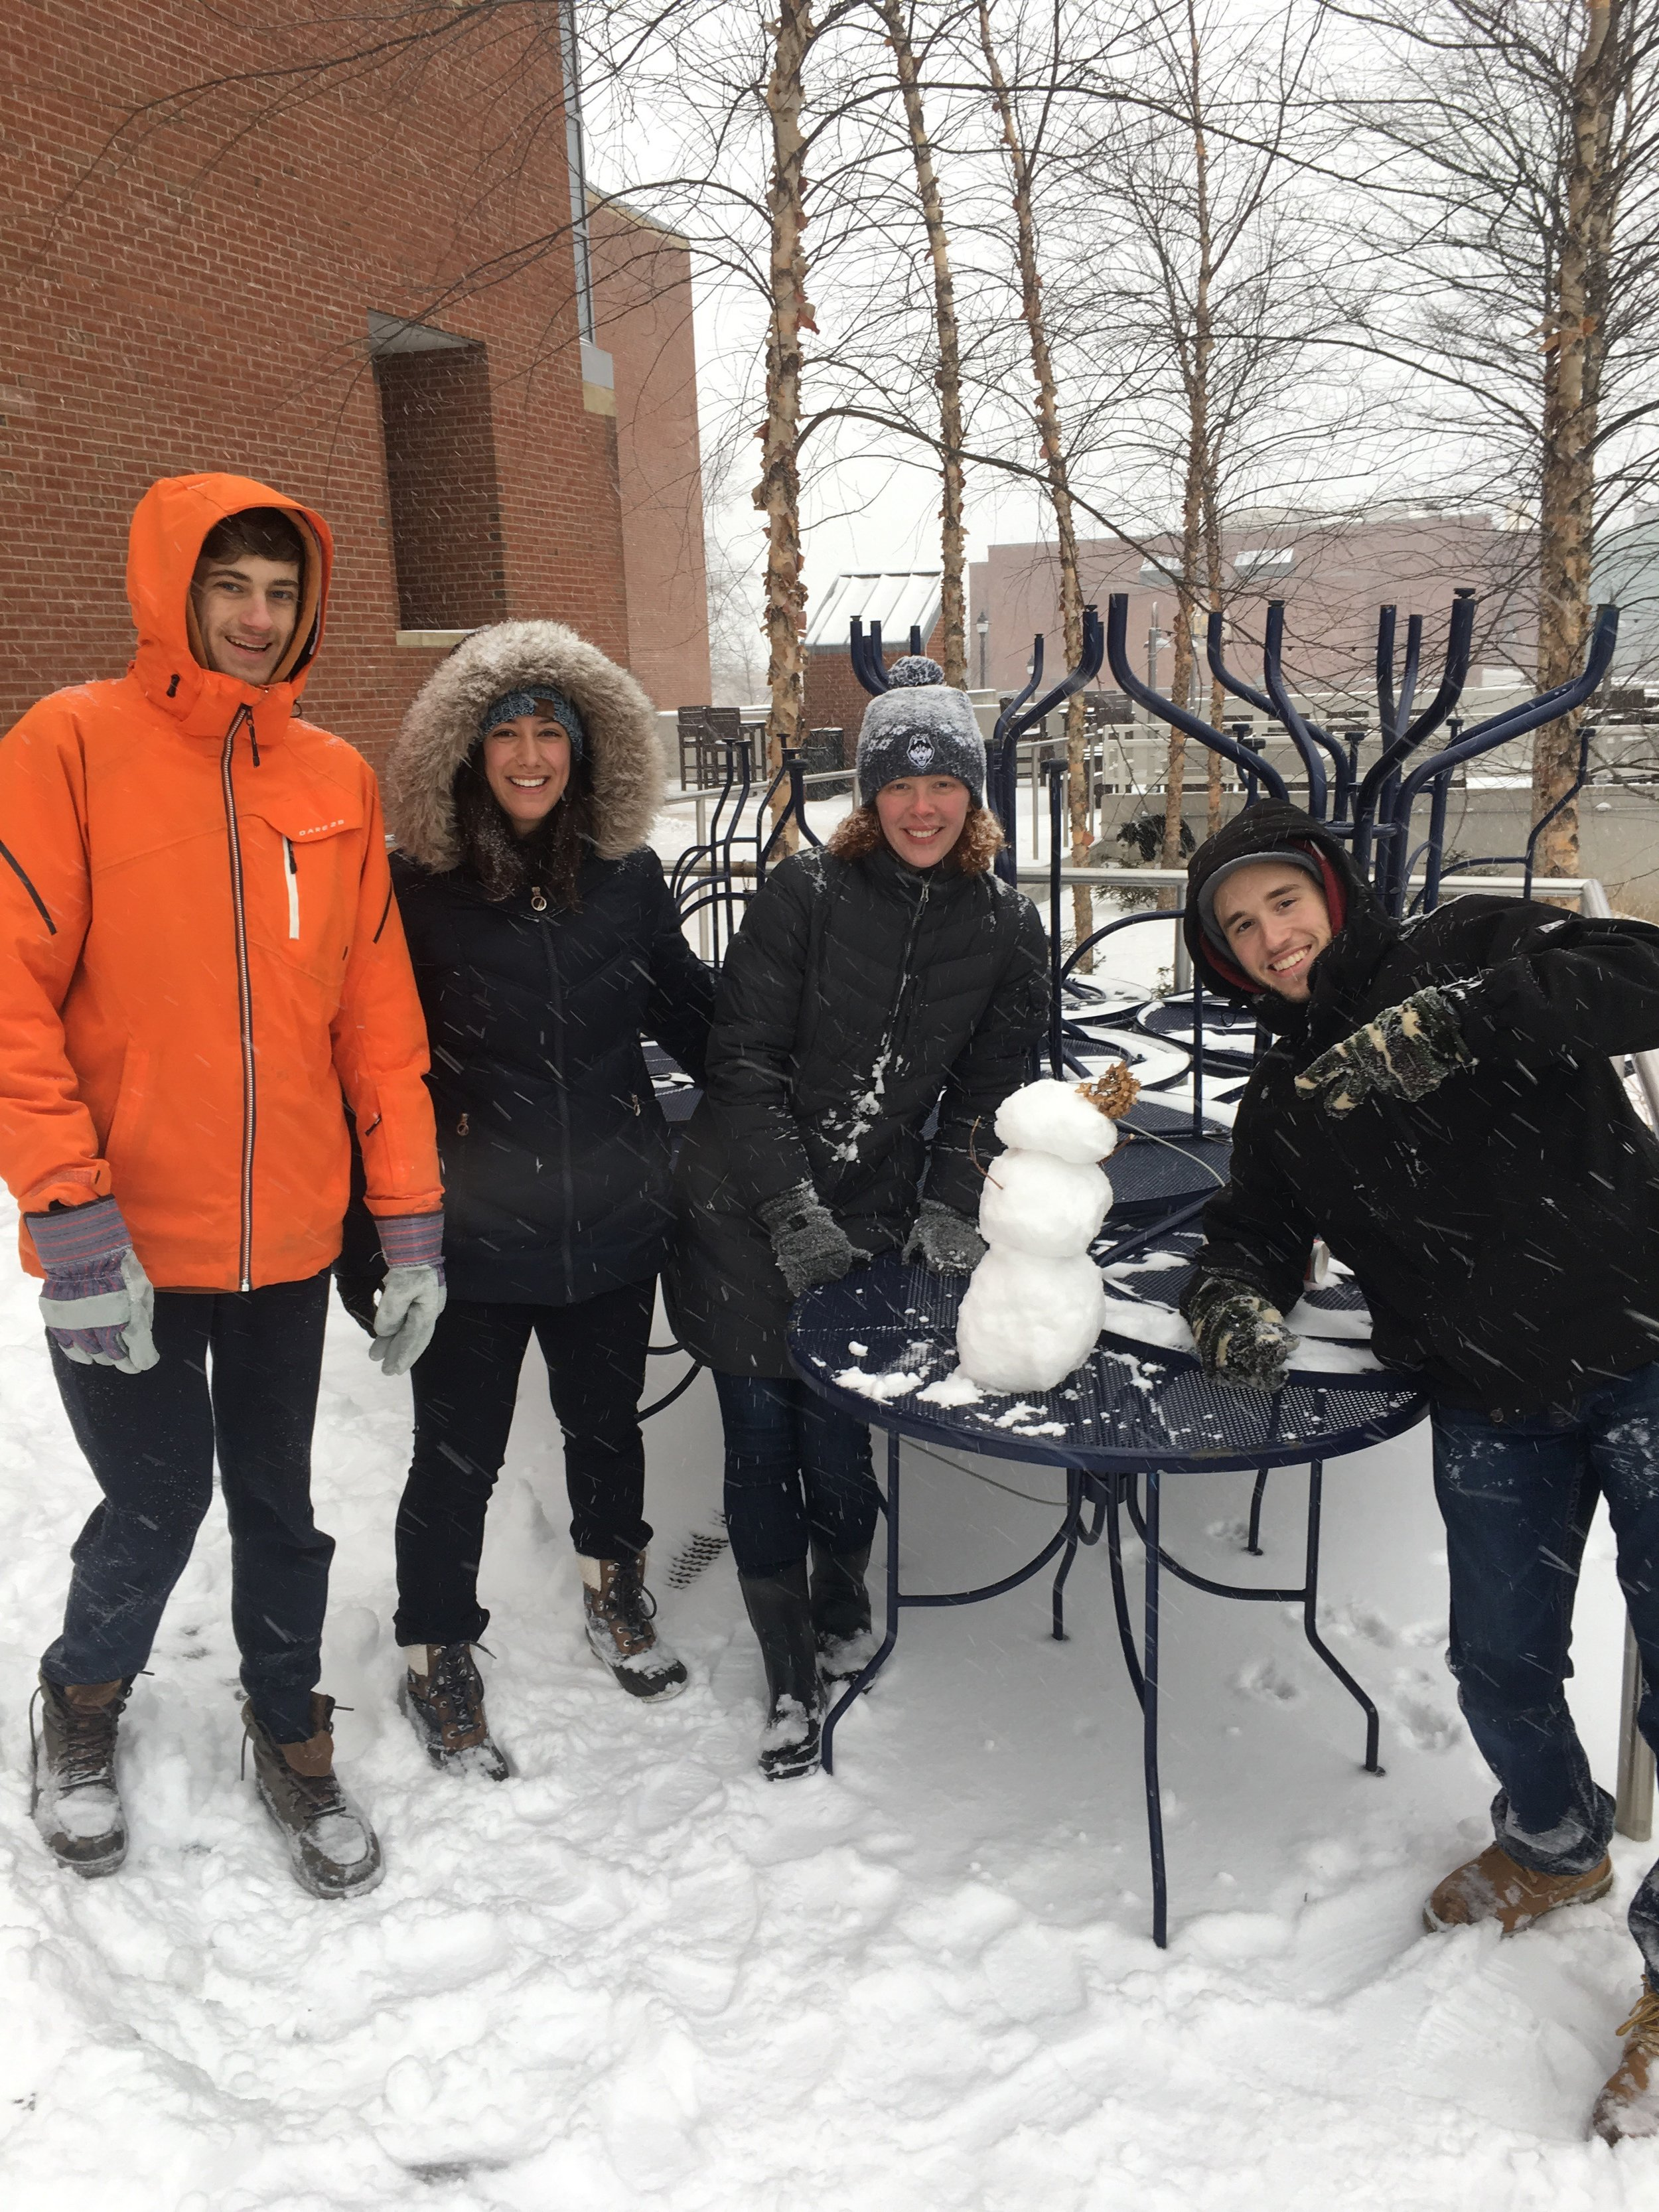 The UConn Snowman Appreciation Club recreates the childhood joy of building snowmen.    Photos provided by Will Broding of USAC.